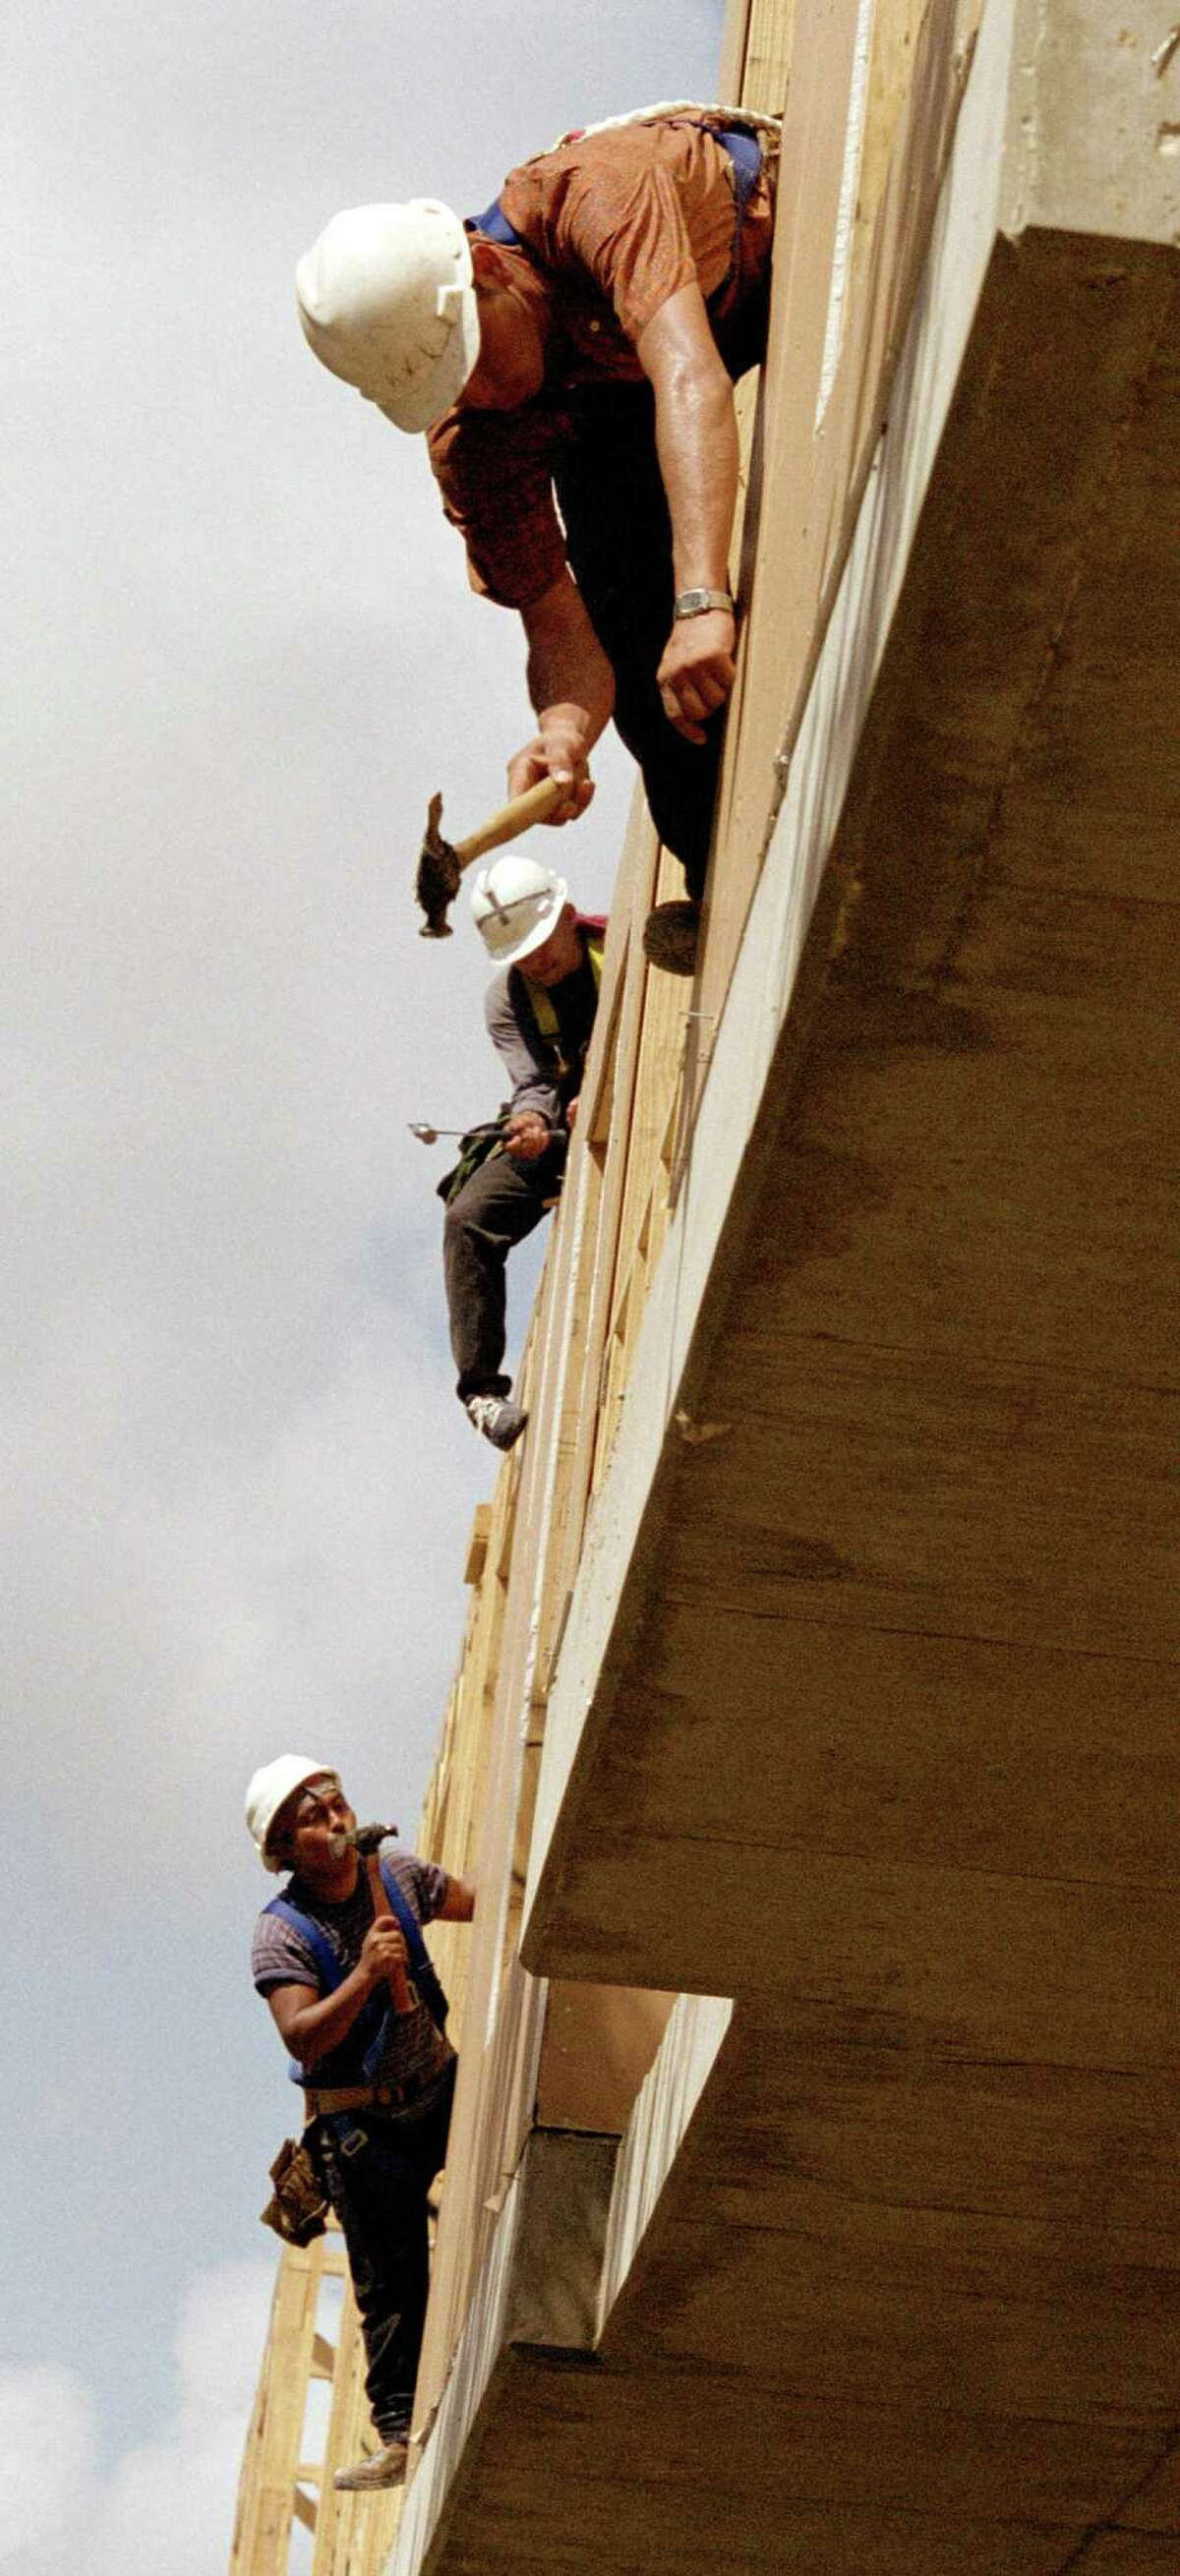 CONTACT FILED: CALAIS AT COURTLANDT SQUARE APARTMENTS Construction workers hammer exterior siding to the Calais at Courtlandt Square Apartments (at the corner of Smith and Stuart Street just south of downtown) under construction on 9-26-03. The Houston apartment market is believed by some to be overbuilt and soft.